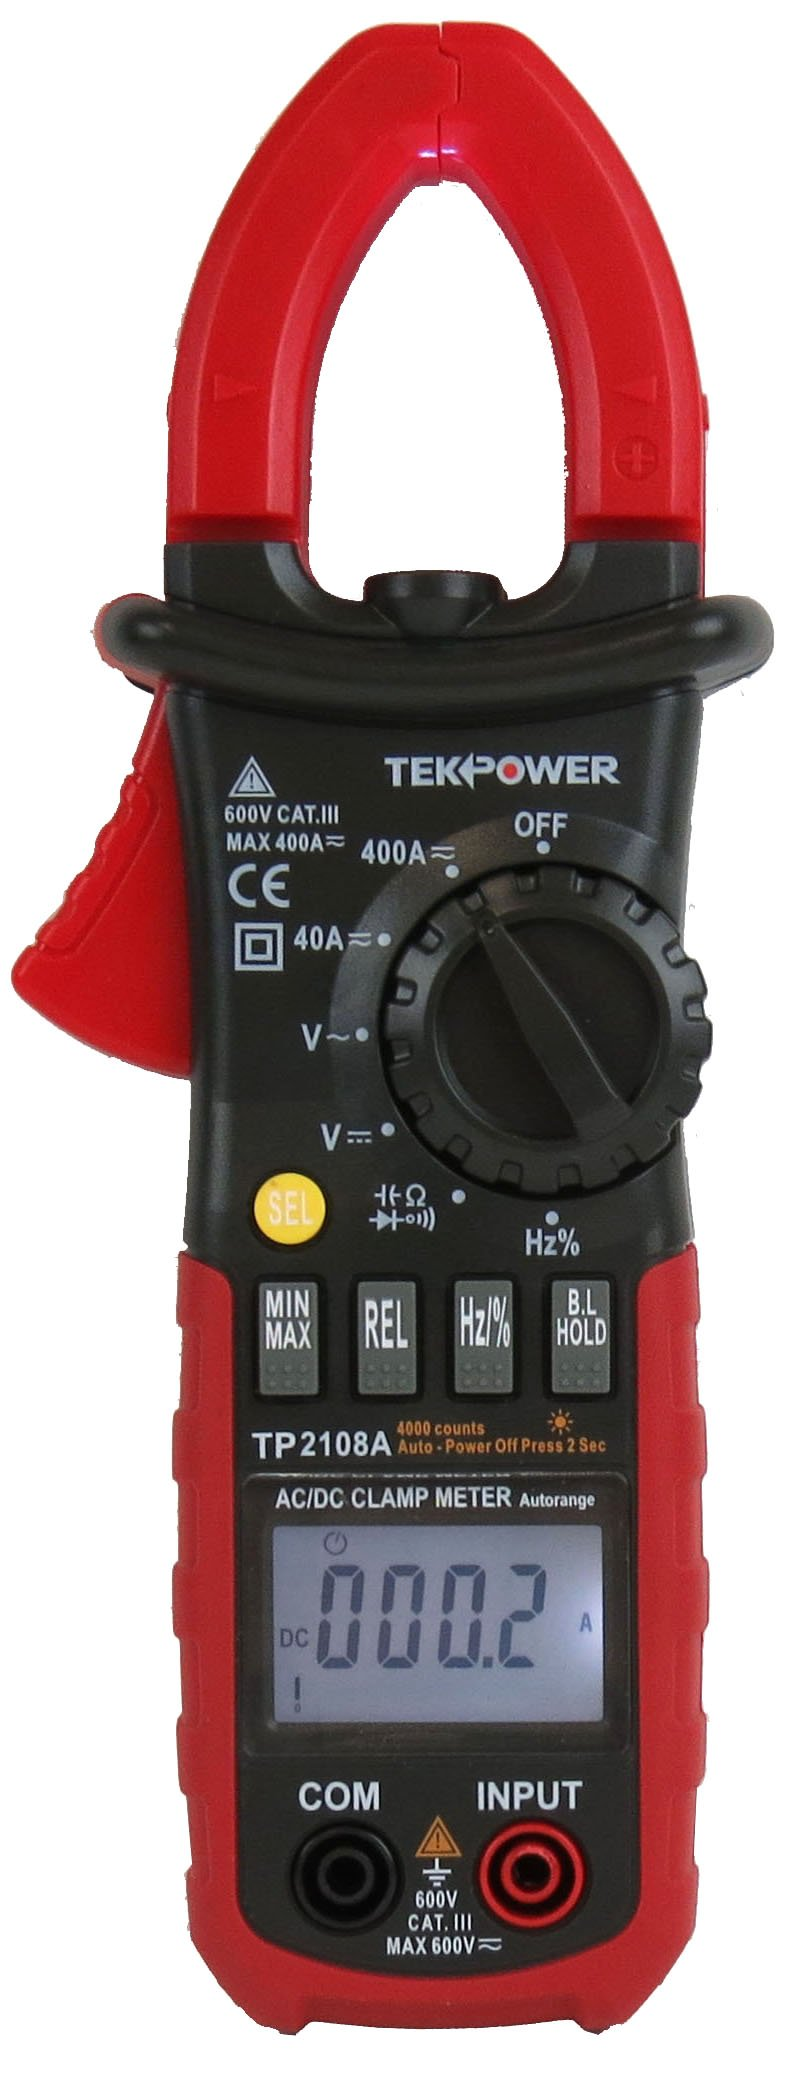 TekPower TP2108A 4000 Counts Clamp Meter AC DC Voltage Current Frequency Tester by Tekpower